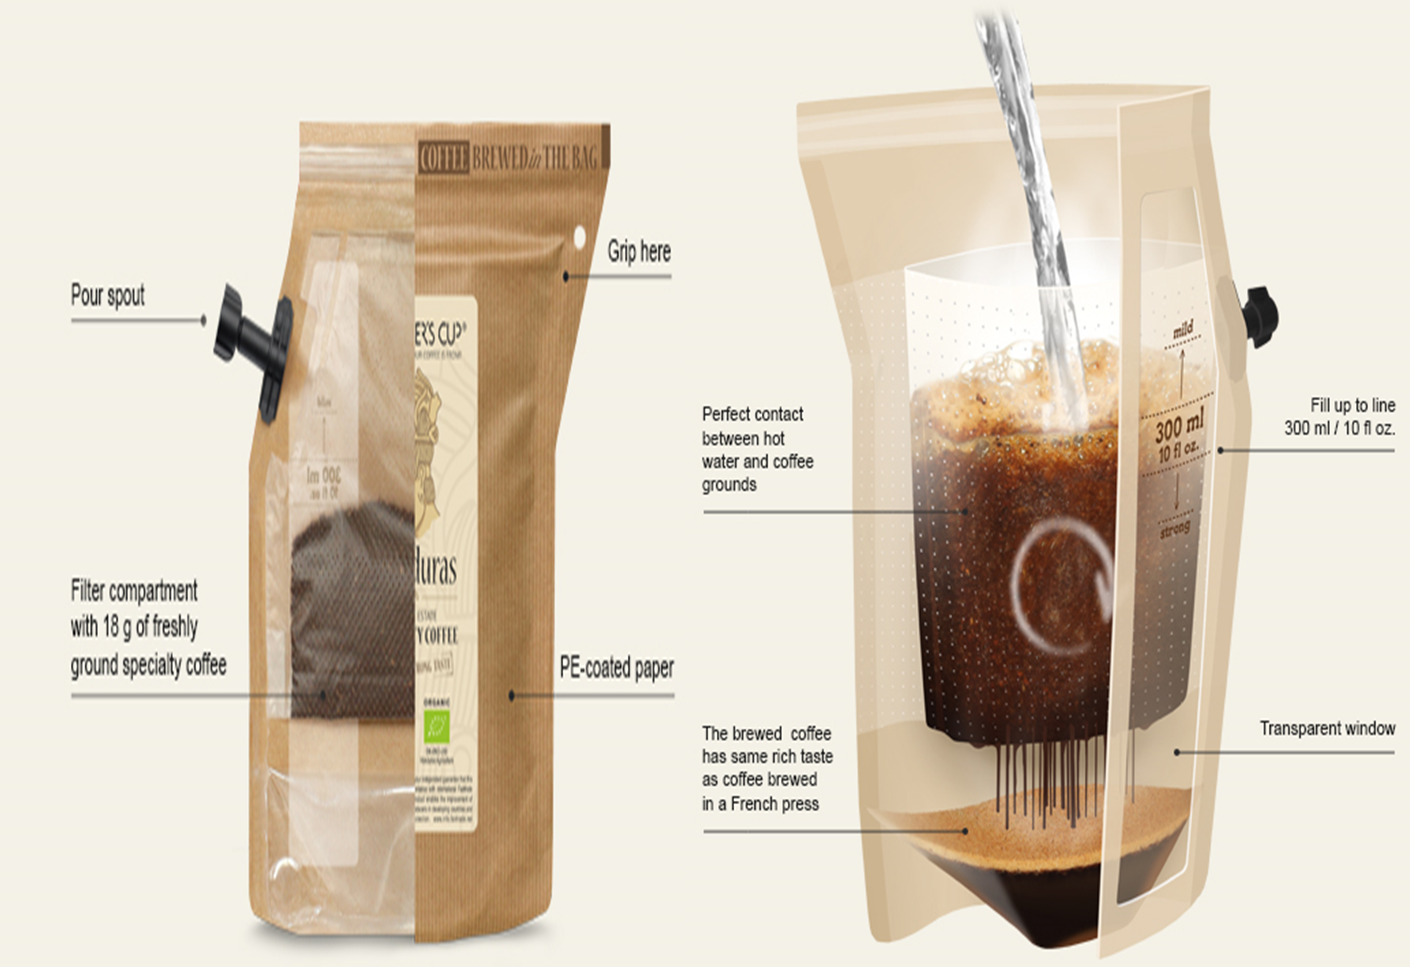 Grower S Cup Is A Bag That You Can Use At Home Camping Or Anywhere You Have Access To Hot Water Coffee Packaging Coffee Shop Branding Food Delivery Packaging